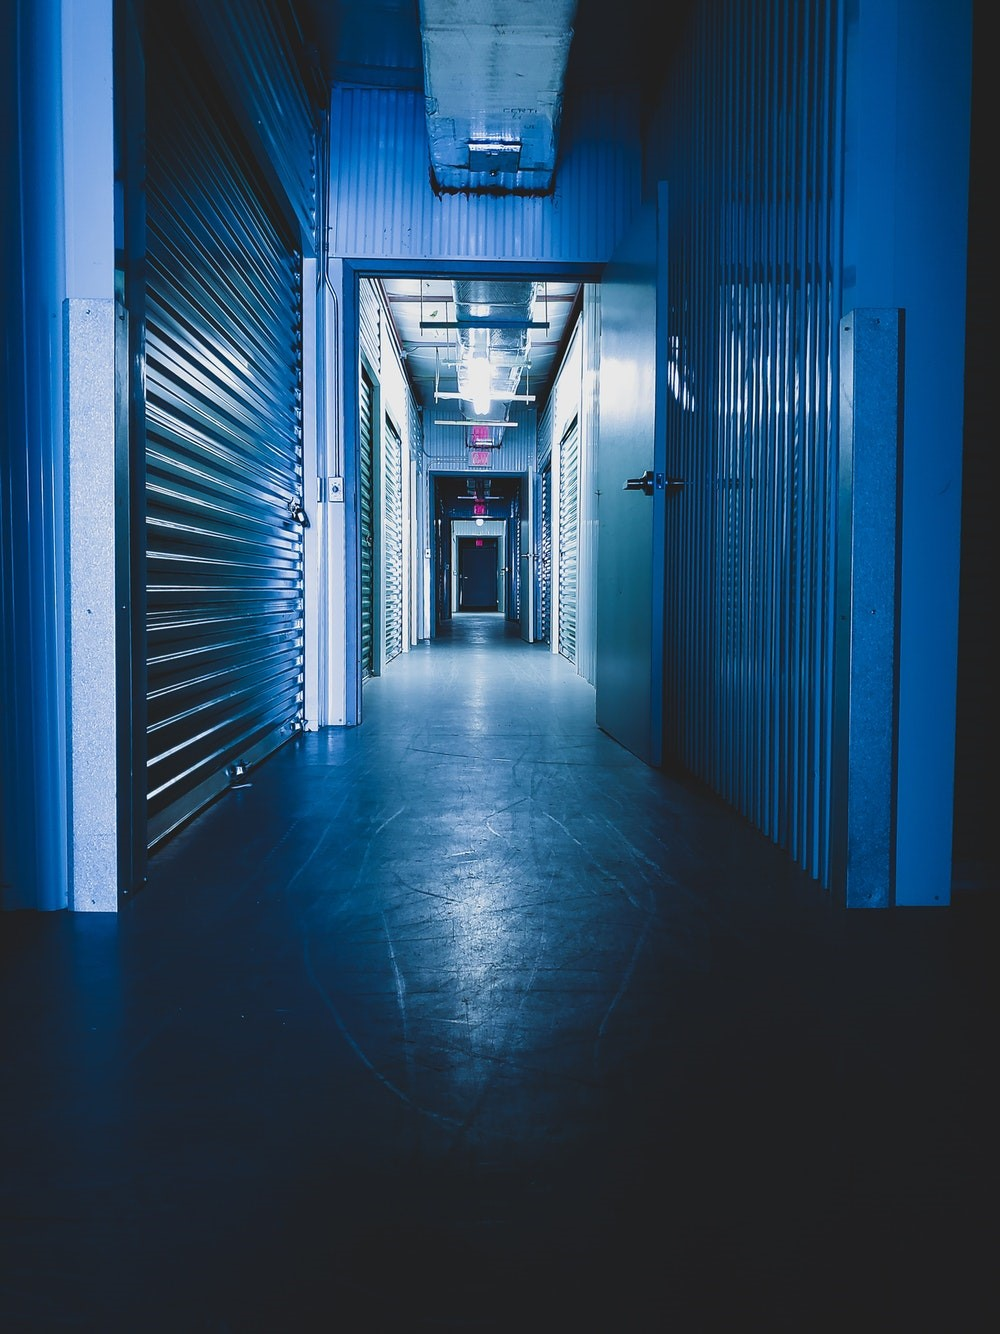 Things to Consider Before Renting a Storage Facility